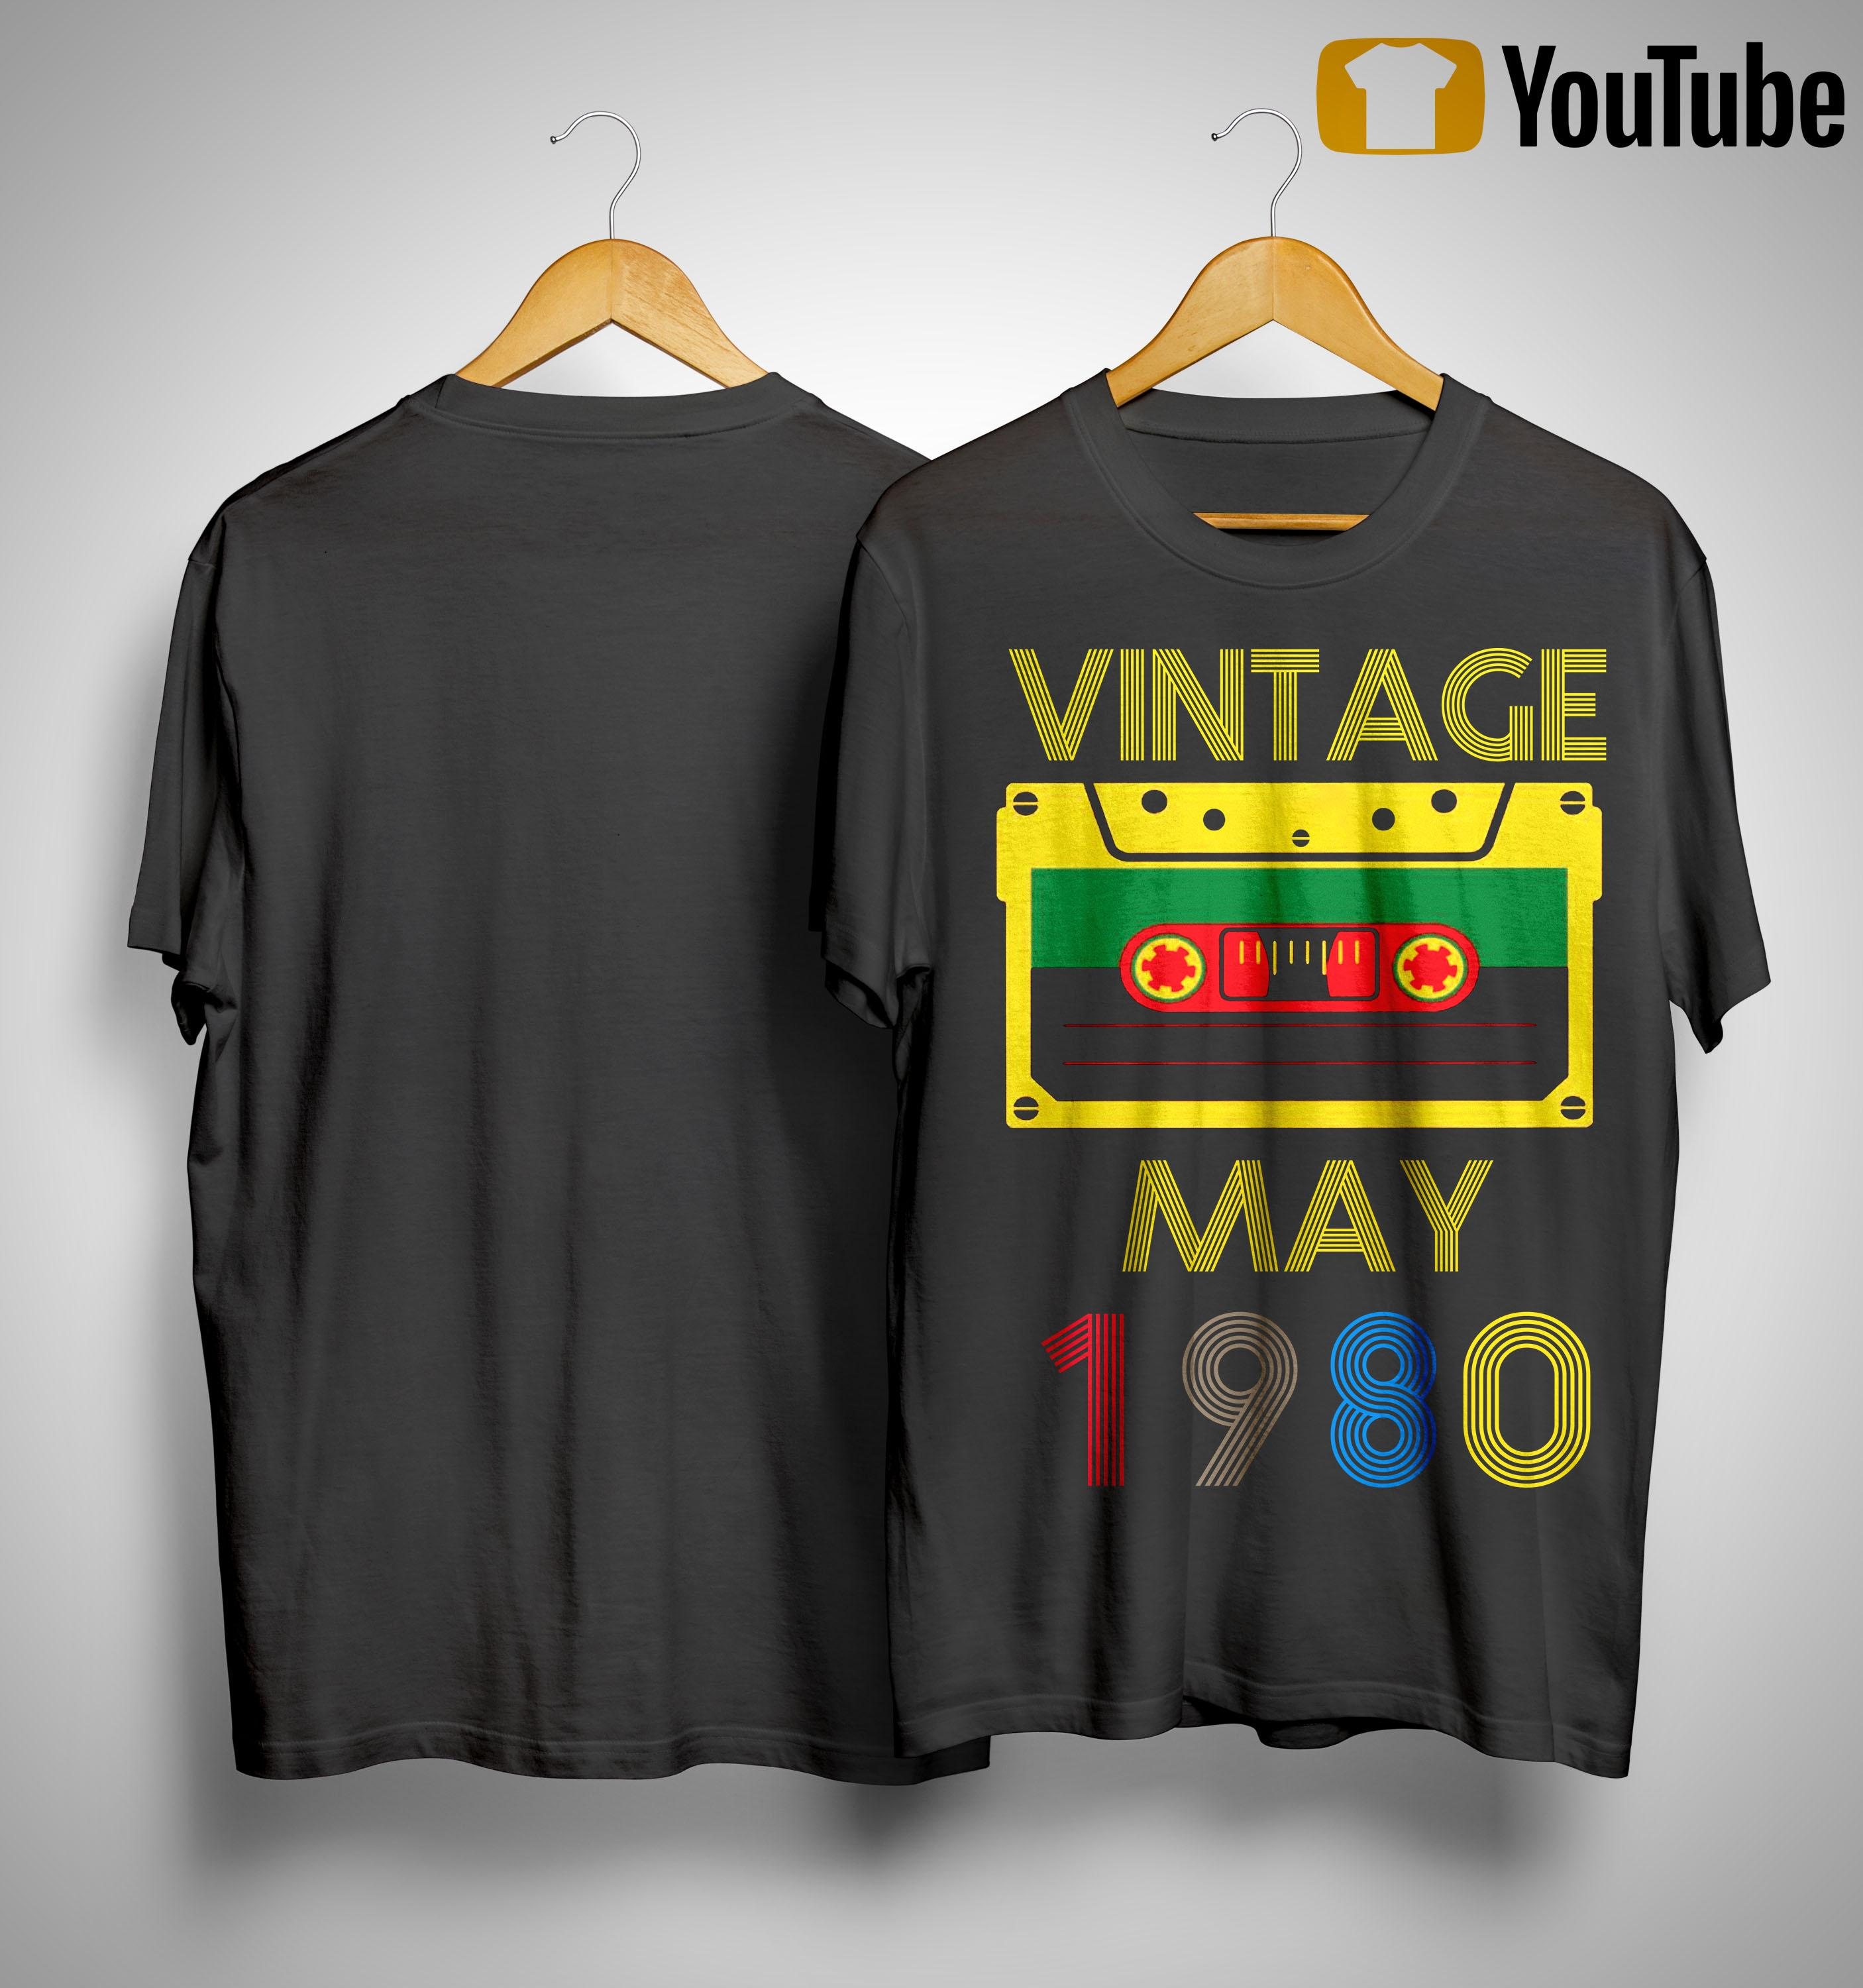 Video Tape Vintage May 1980 Shirt